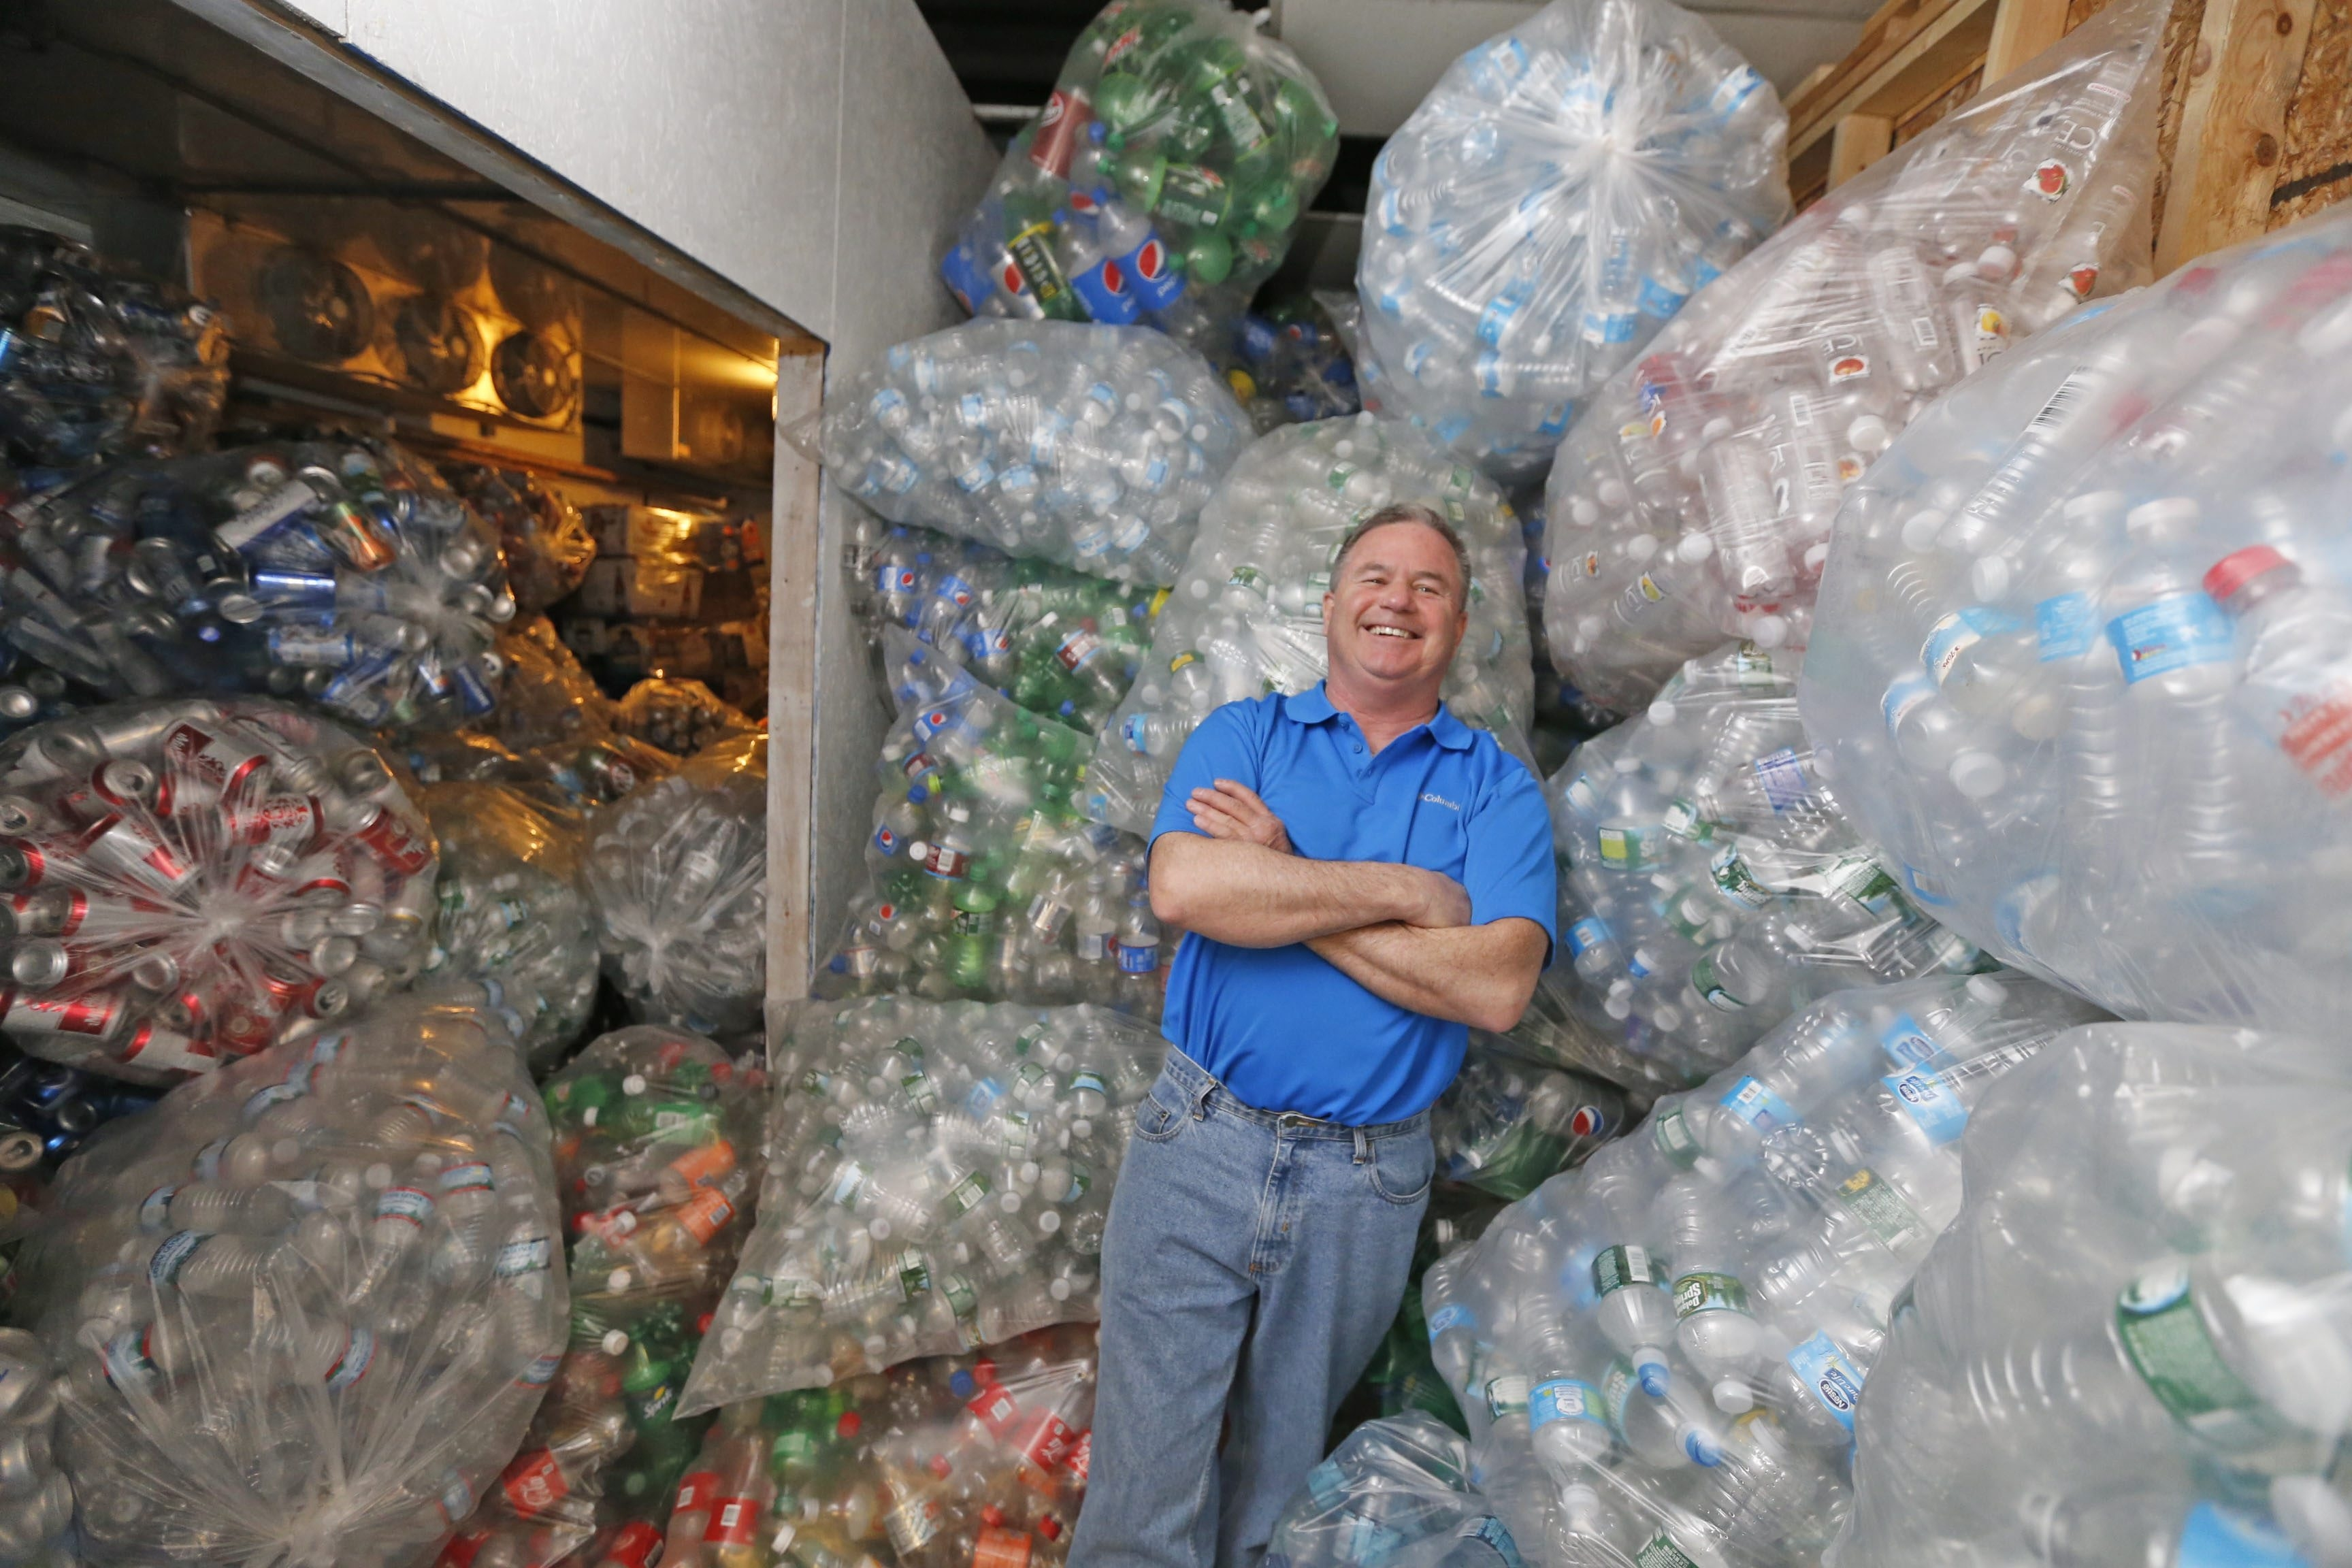 Niagara Q&A: Recycling is theme at Ransomville's Business of